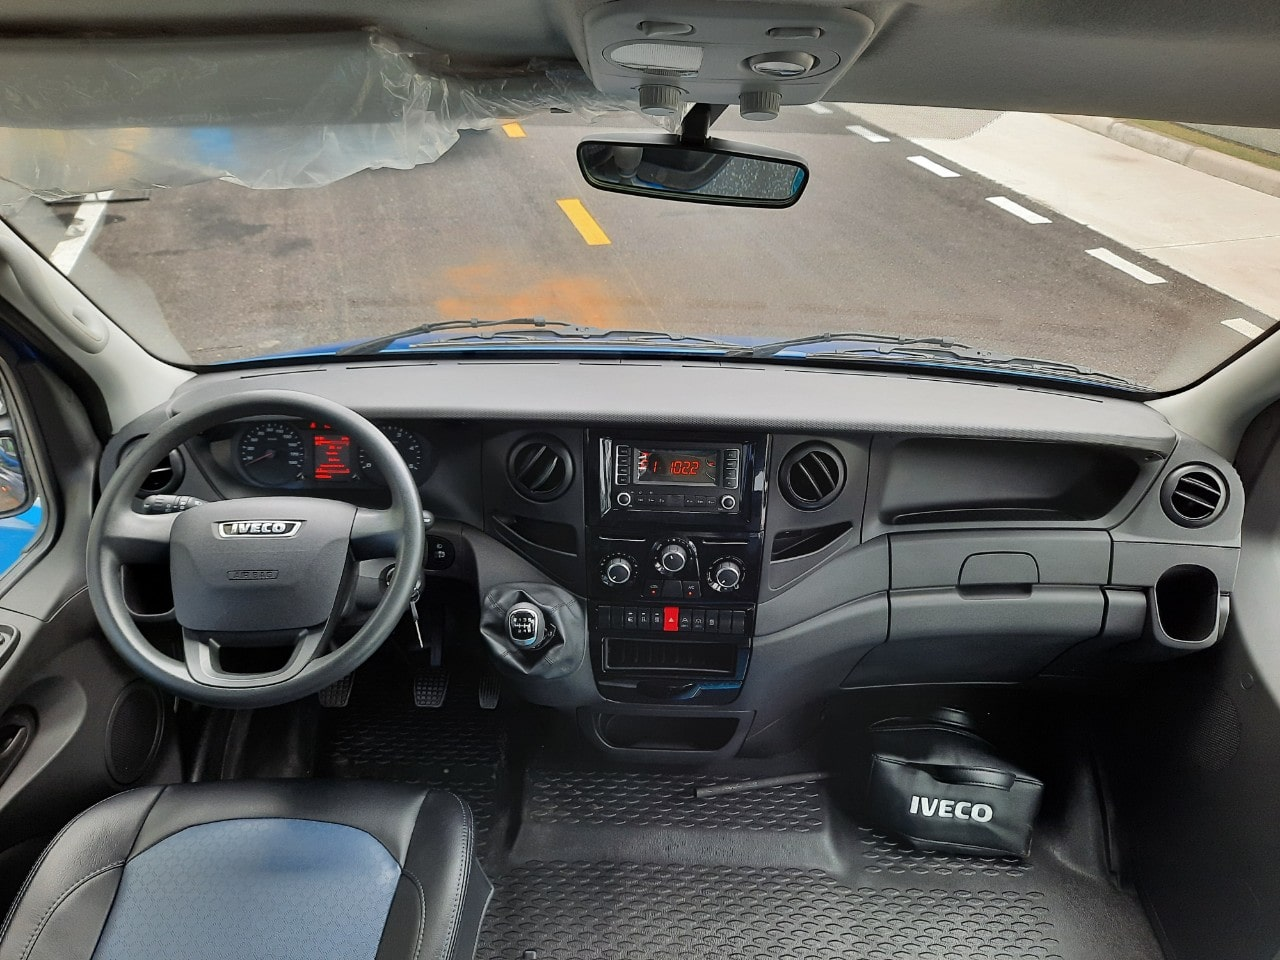 cabin rộng thoáng iveco Plus